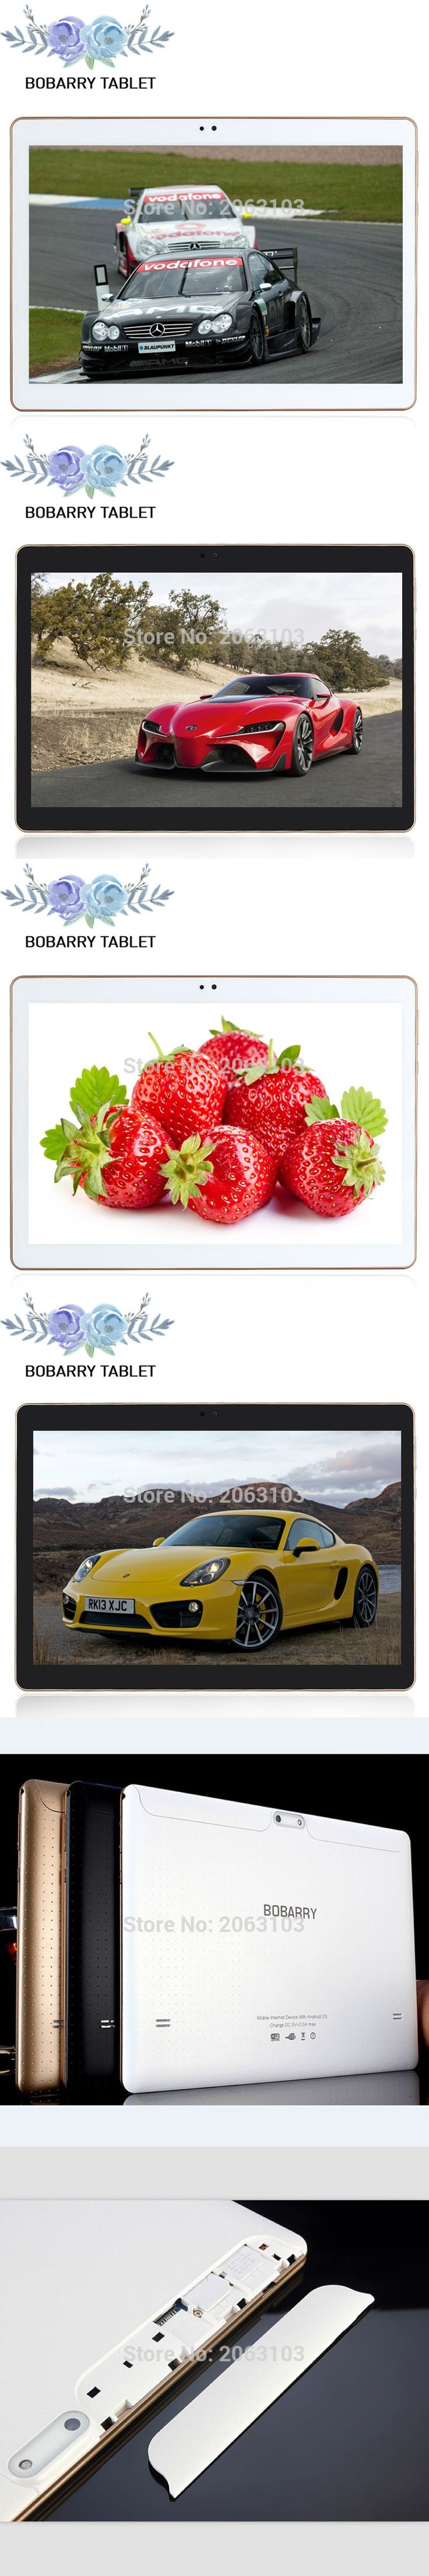 Russia news 2016 the tablet puter tablets phone call android 5 1 4G 10 1 inch 10